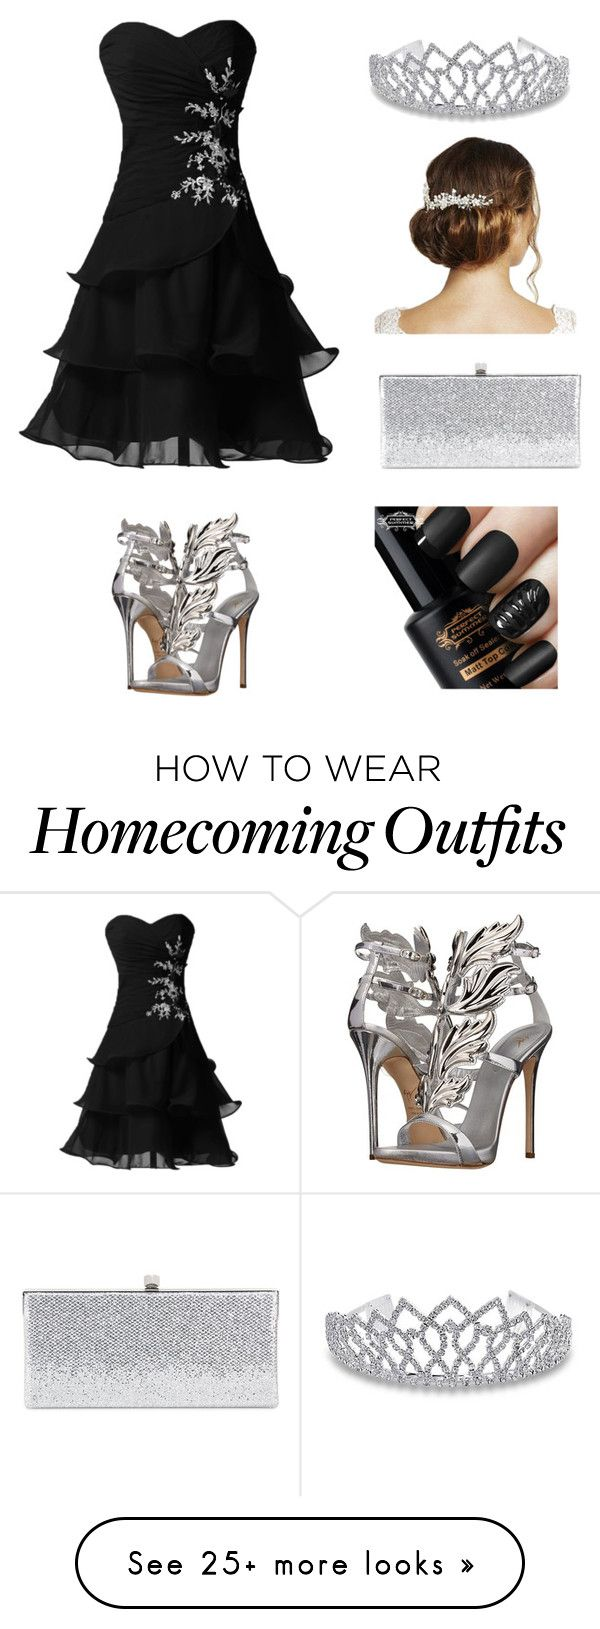 """""""Prom Queen"""" by rwagner5661 on Polyvore featuring Giuseppe Zanotti, Bling Jewelry, Jimmy Choo and Jon Richard"""